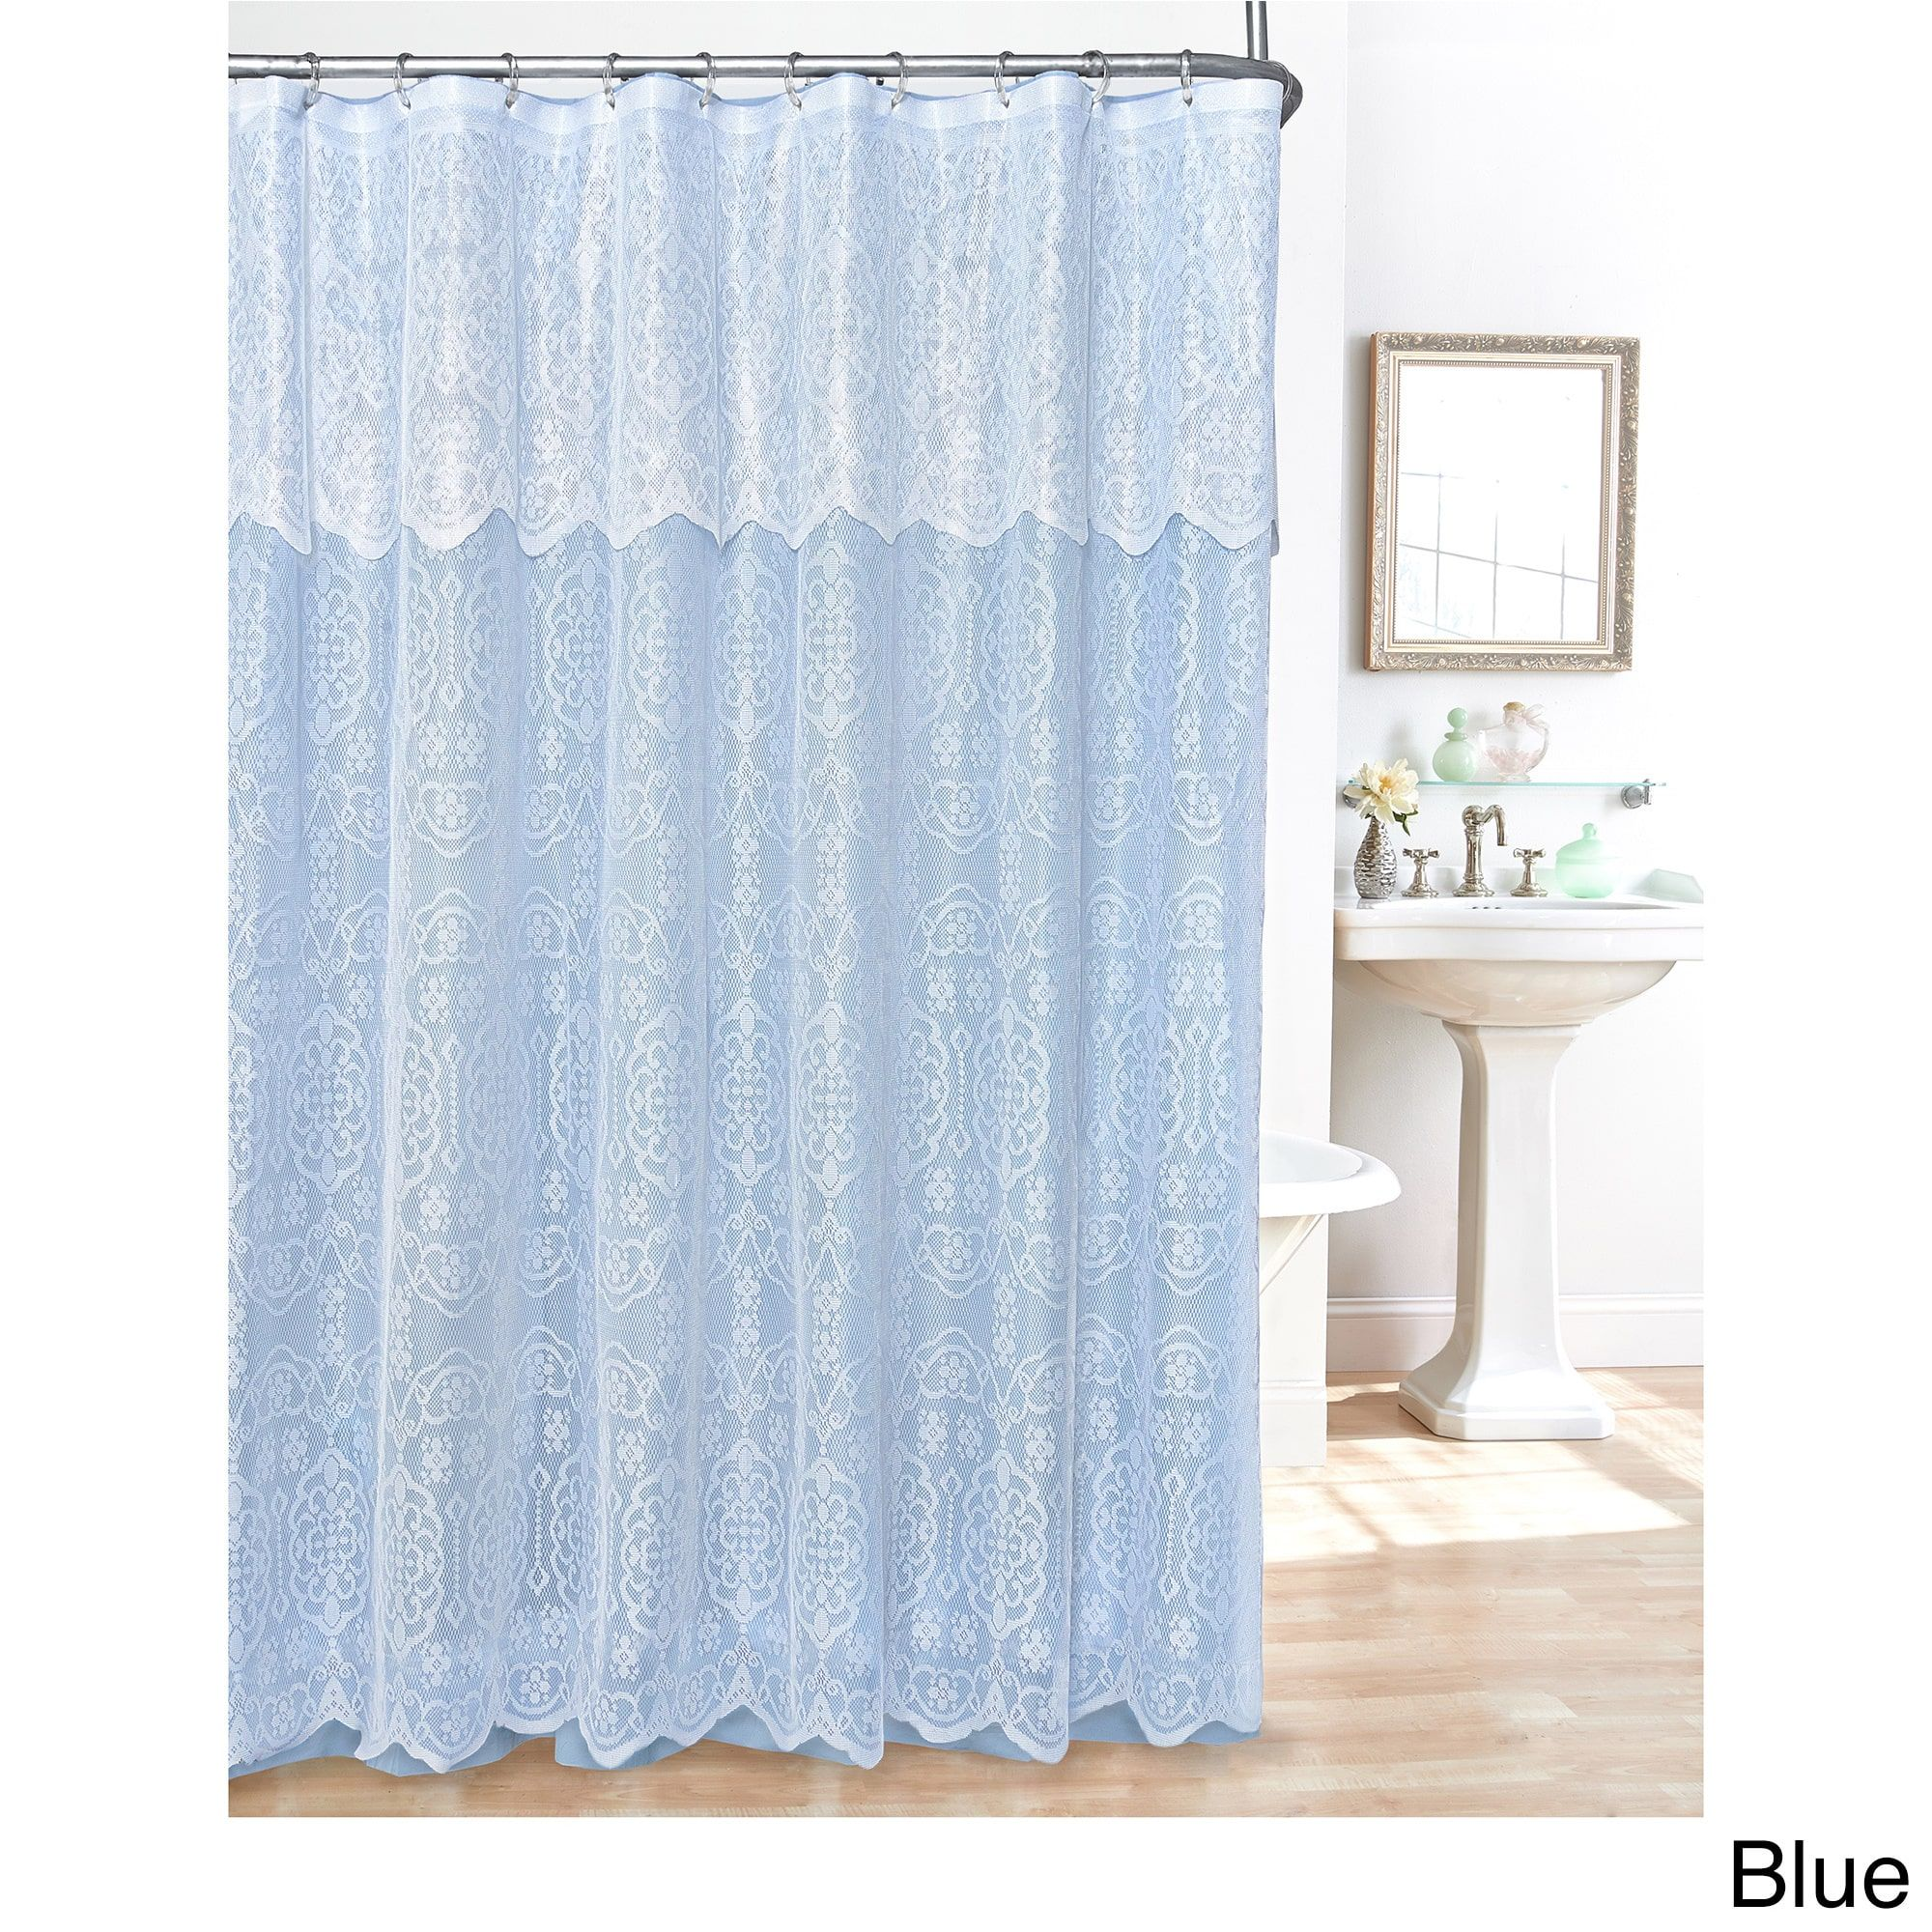 Madison lace shower curtain blue polyester solid color lace